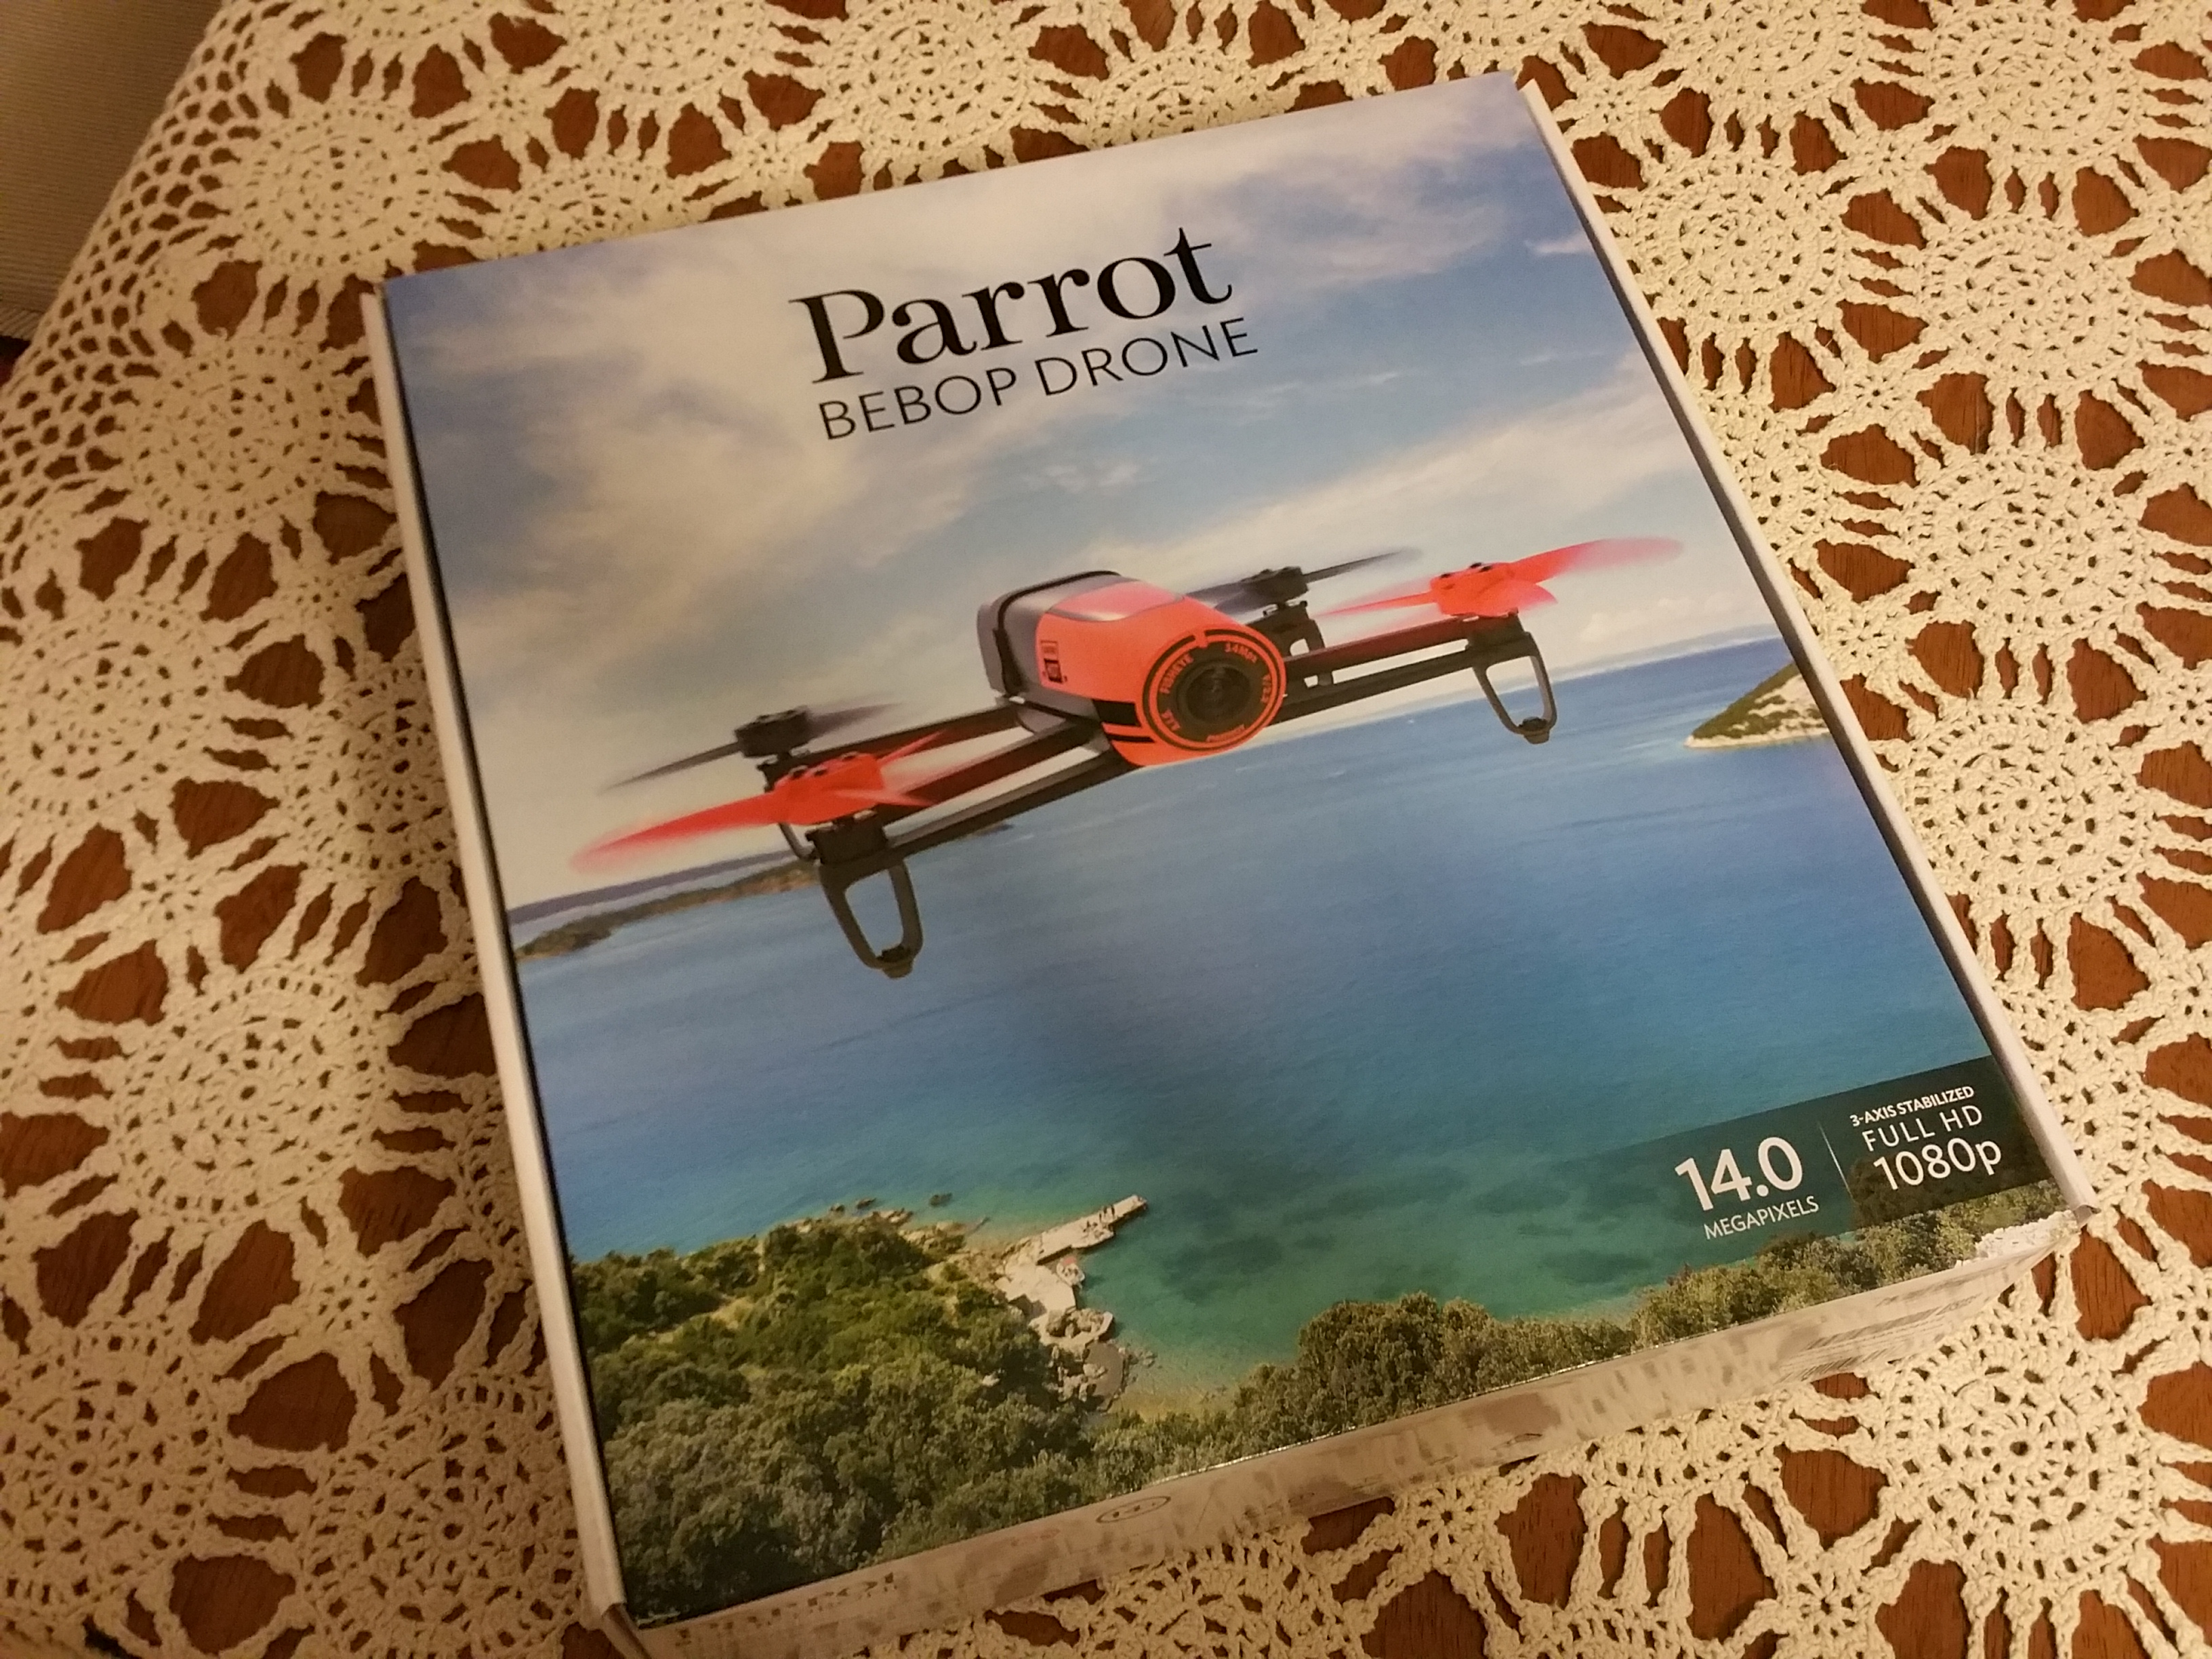 Parrot BeBop Quadcopter Review